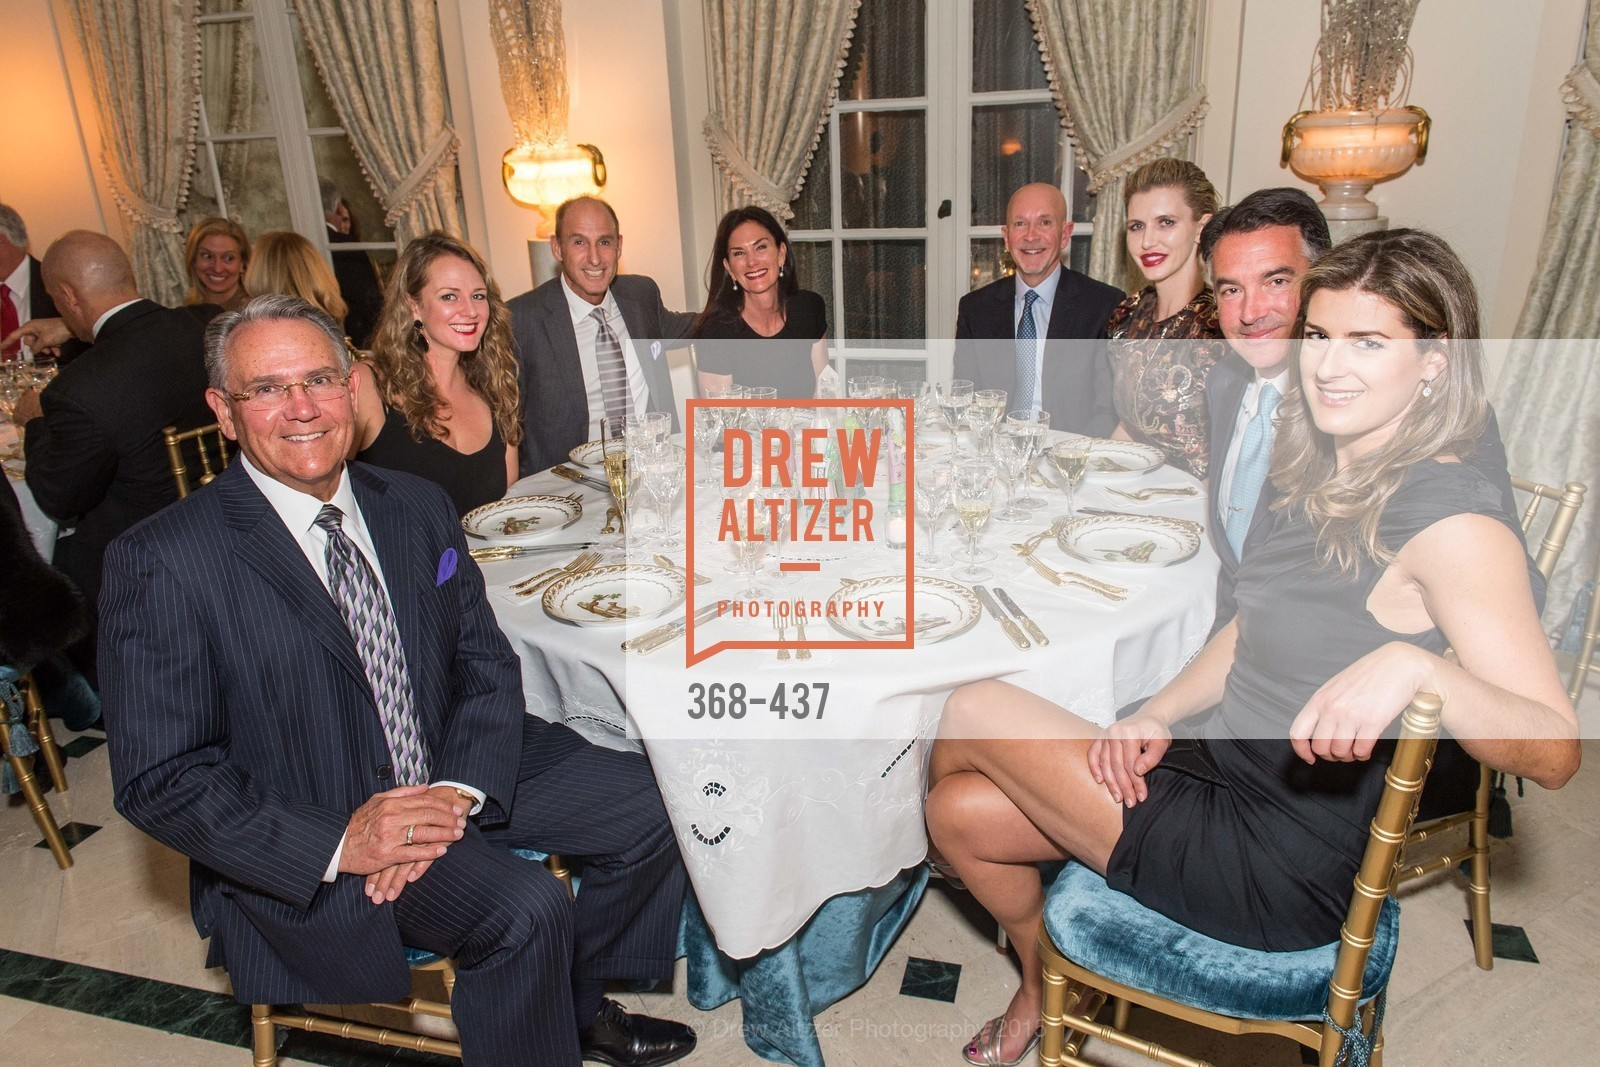 Top Picks, FDS Vintner Reception and Dinner, November 4th, 2015, Photo,Drew Altizer, Drew Altizer Photography, full-service agency, private events, San Francisco photographer, photographer california